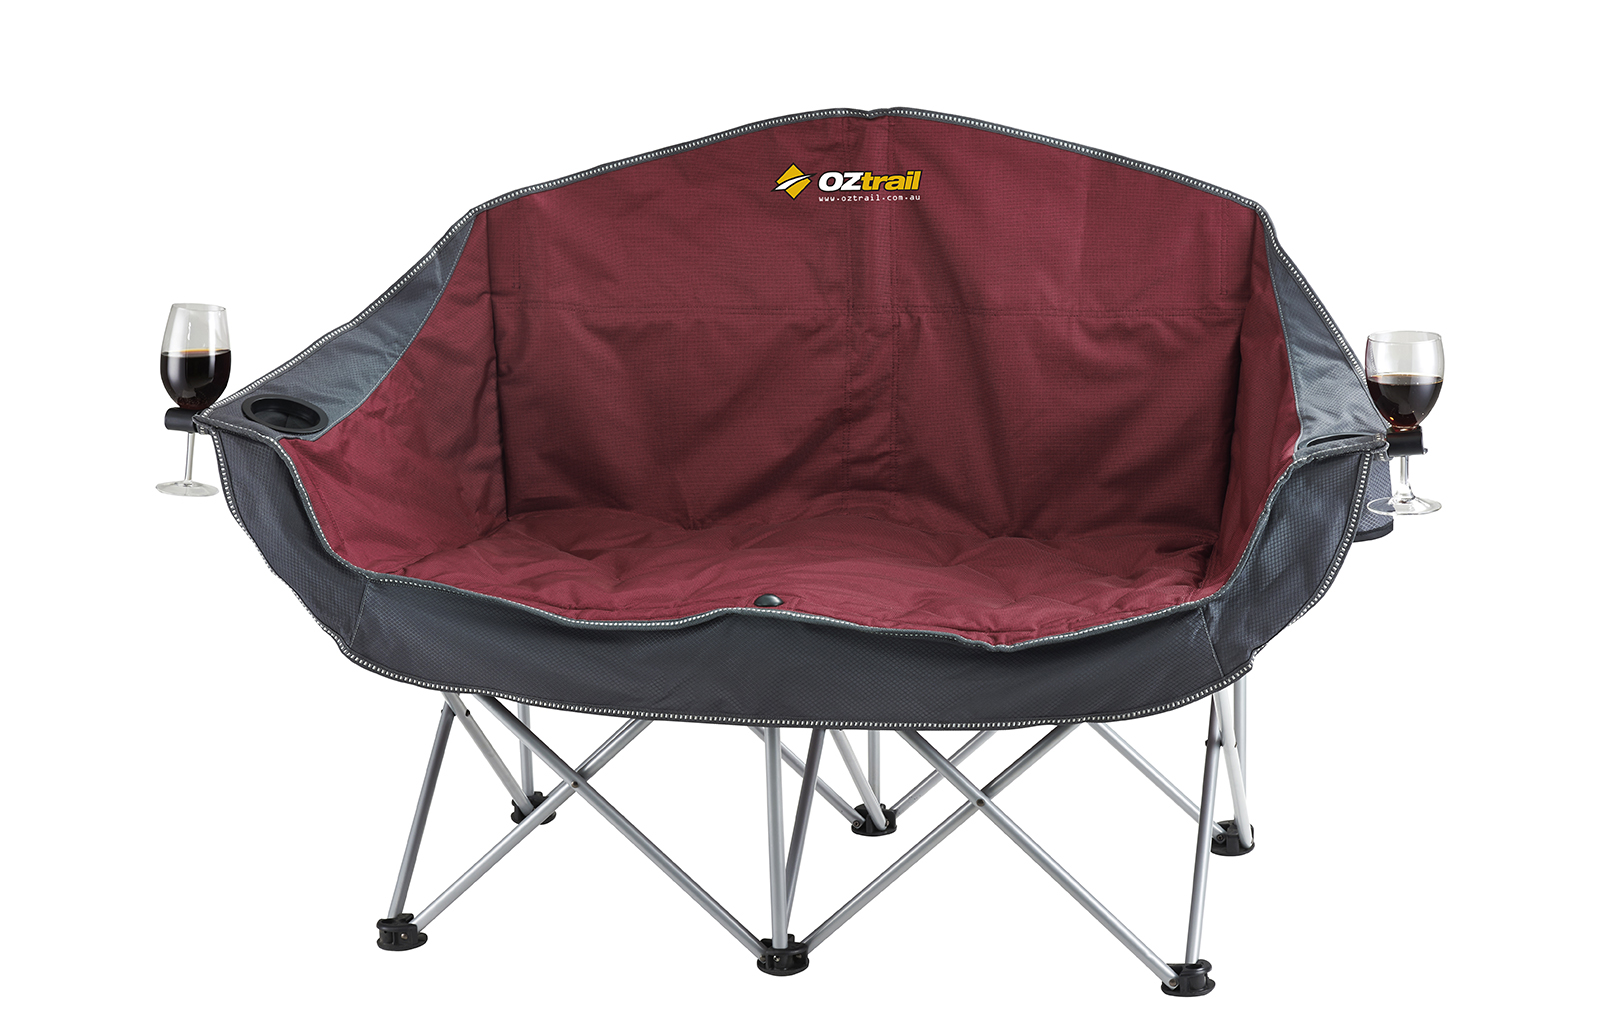 Oztrail Double Galaxy Sofa 2 Seat Lounge Arms Folding Camping Outdoors Maroon Ebay